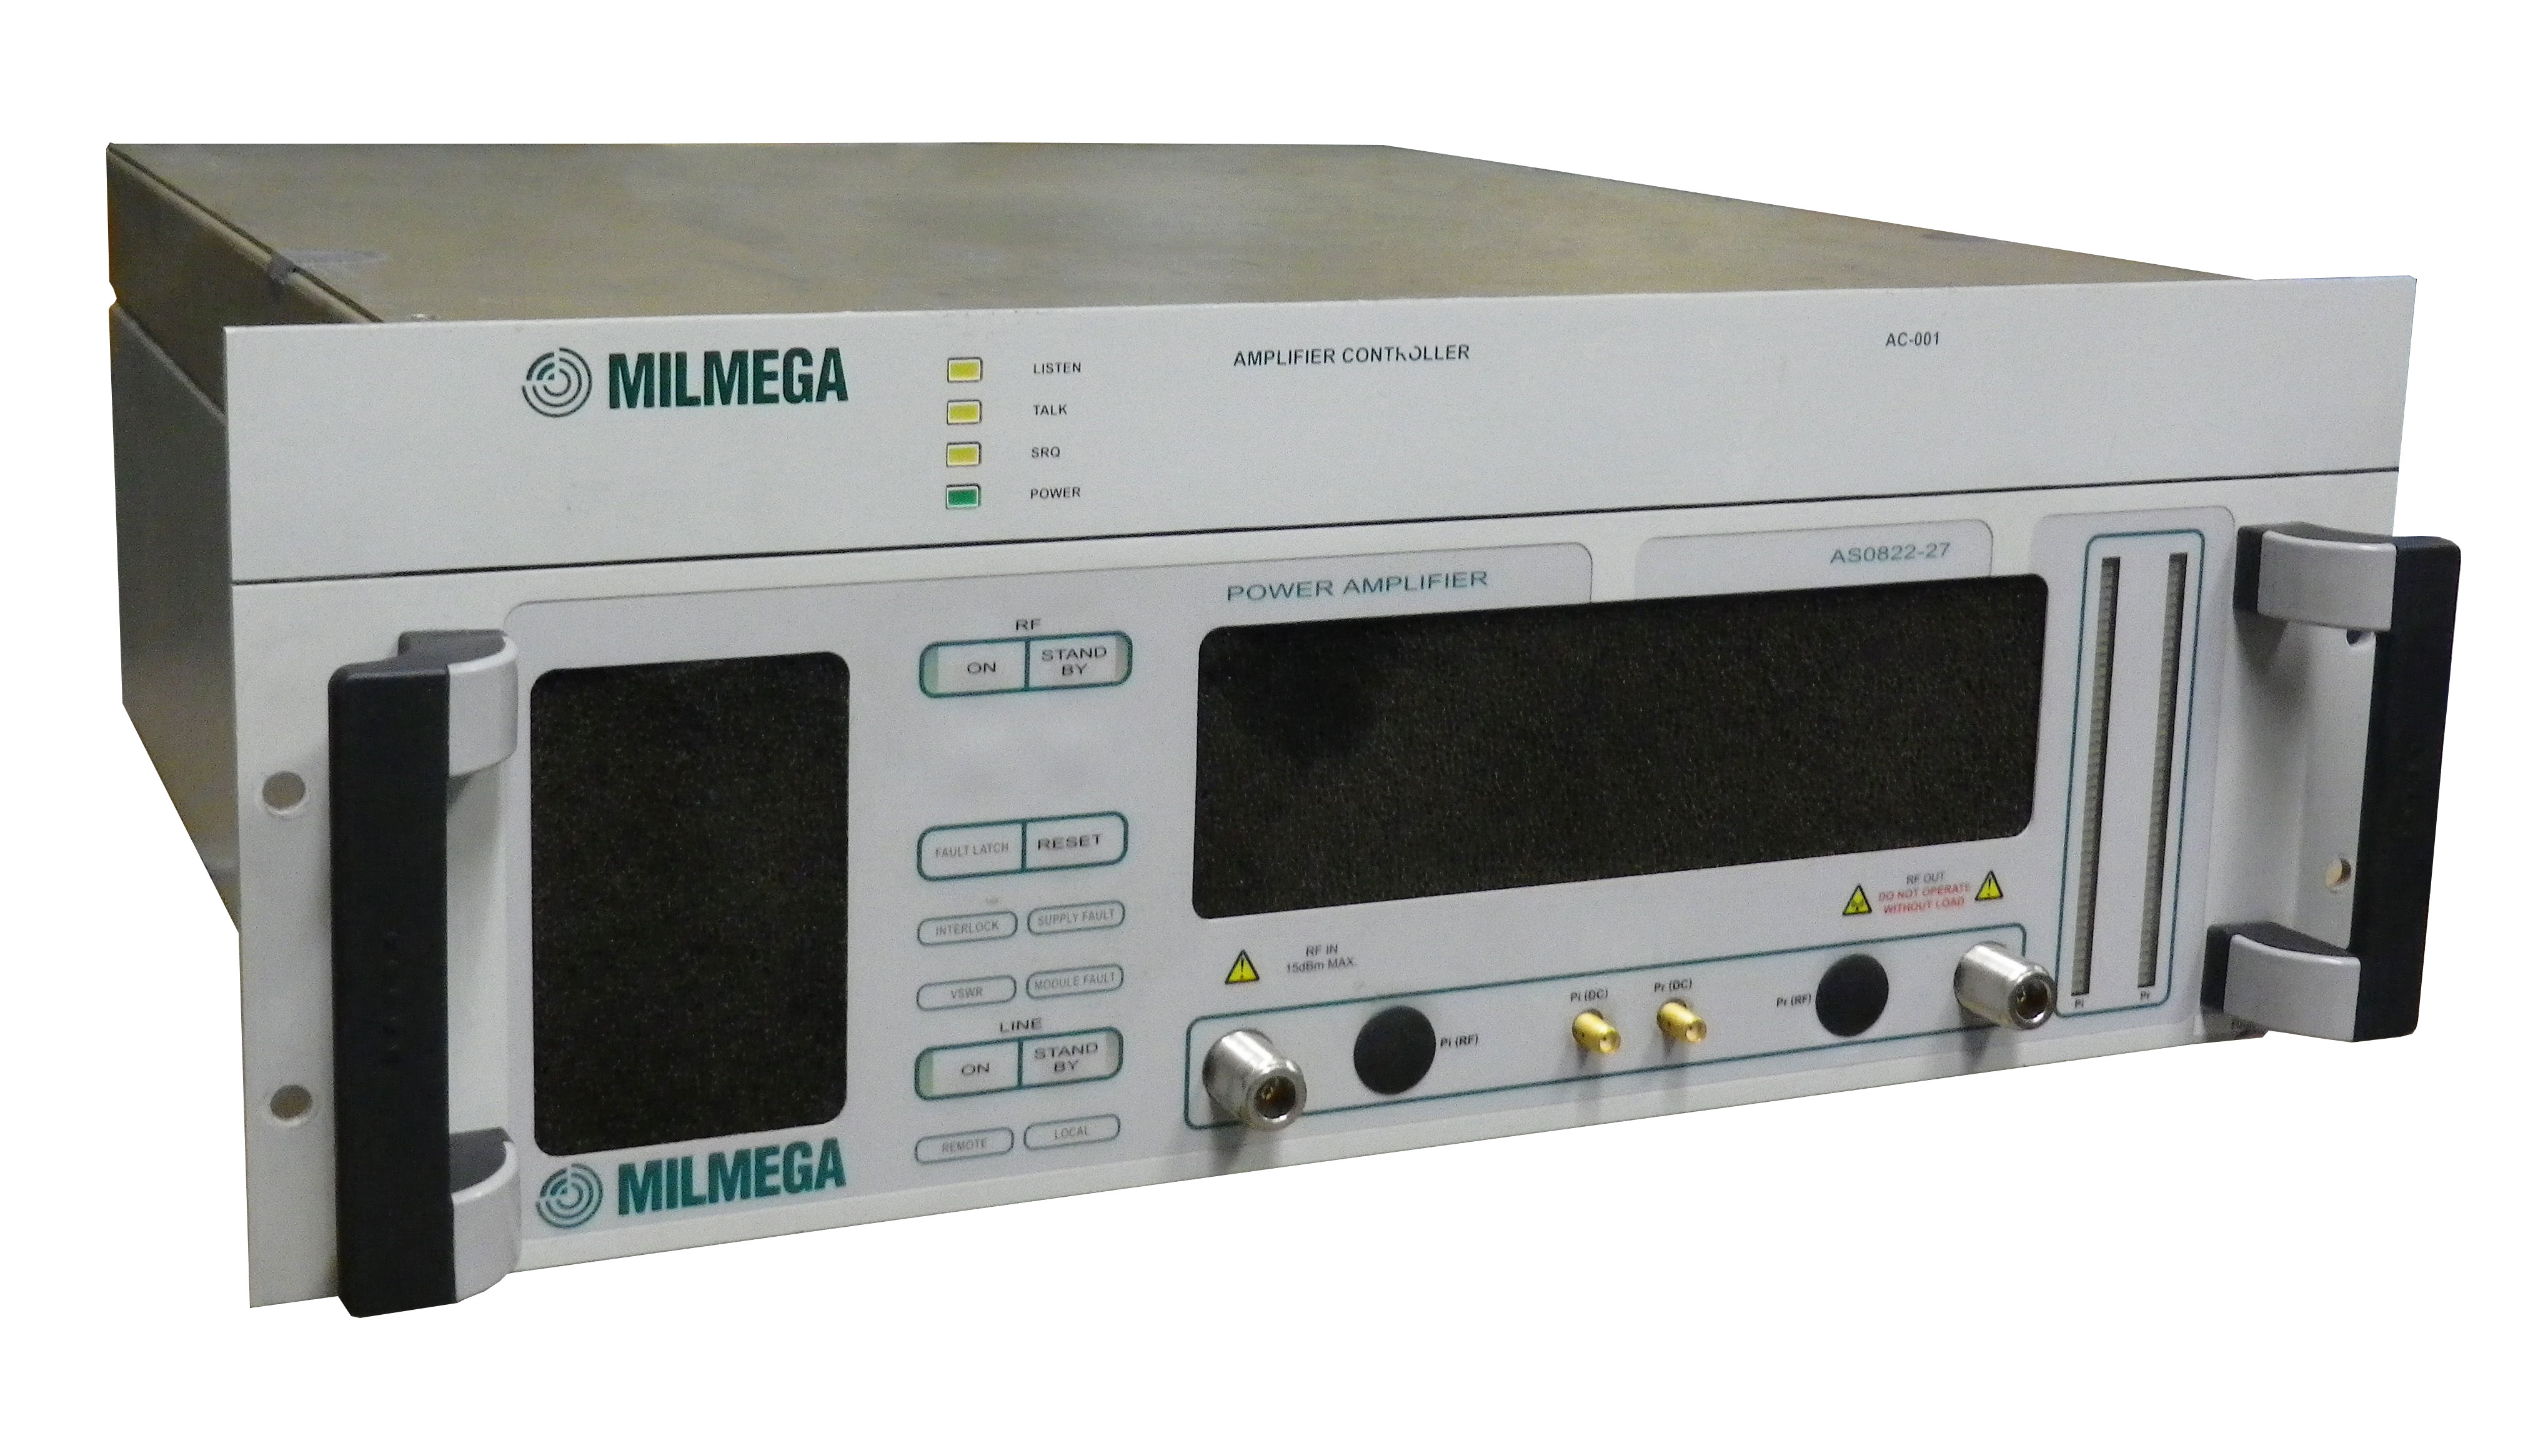 Rent Milmega AS0822 27 Watt 0.8 GHz-2.2 GHz Broadband Amplifier